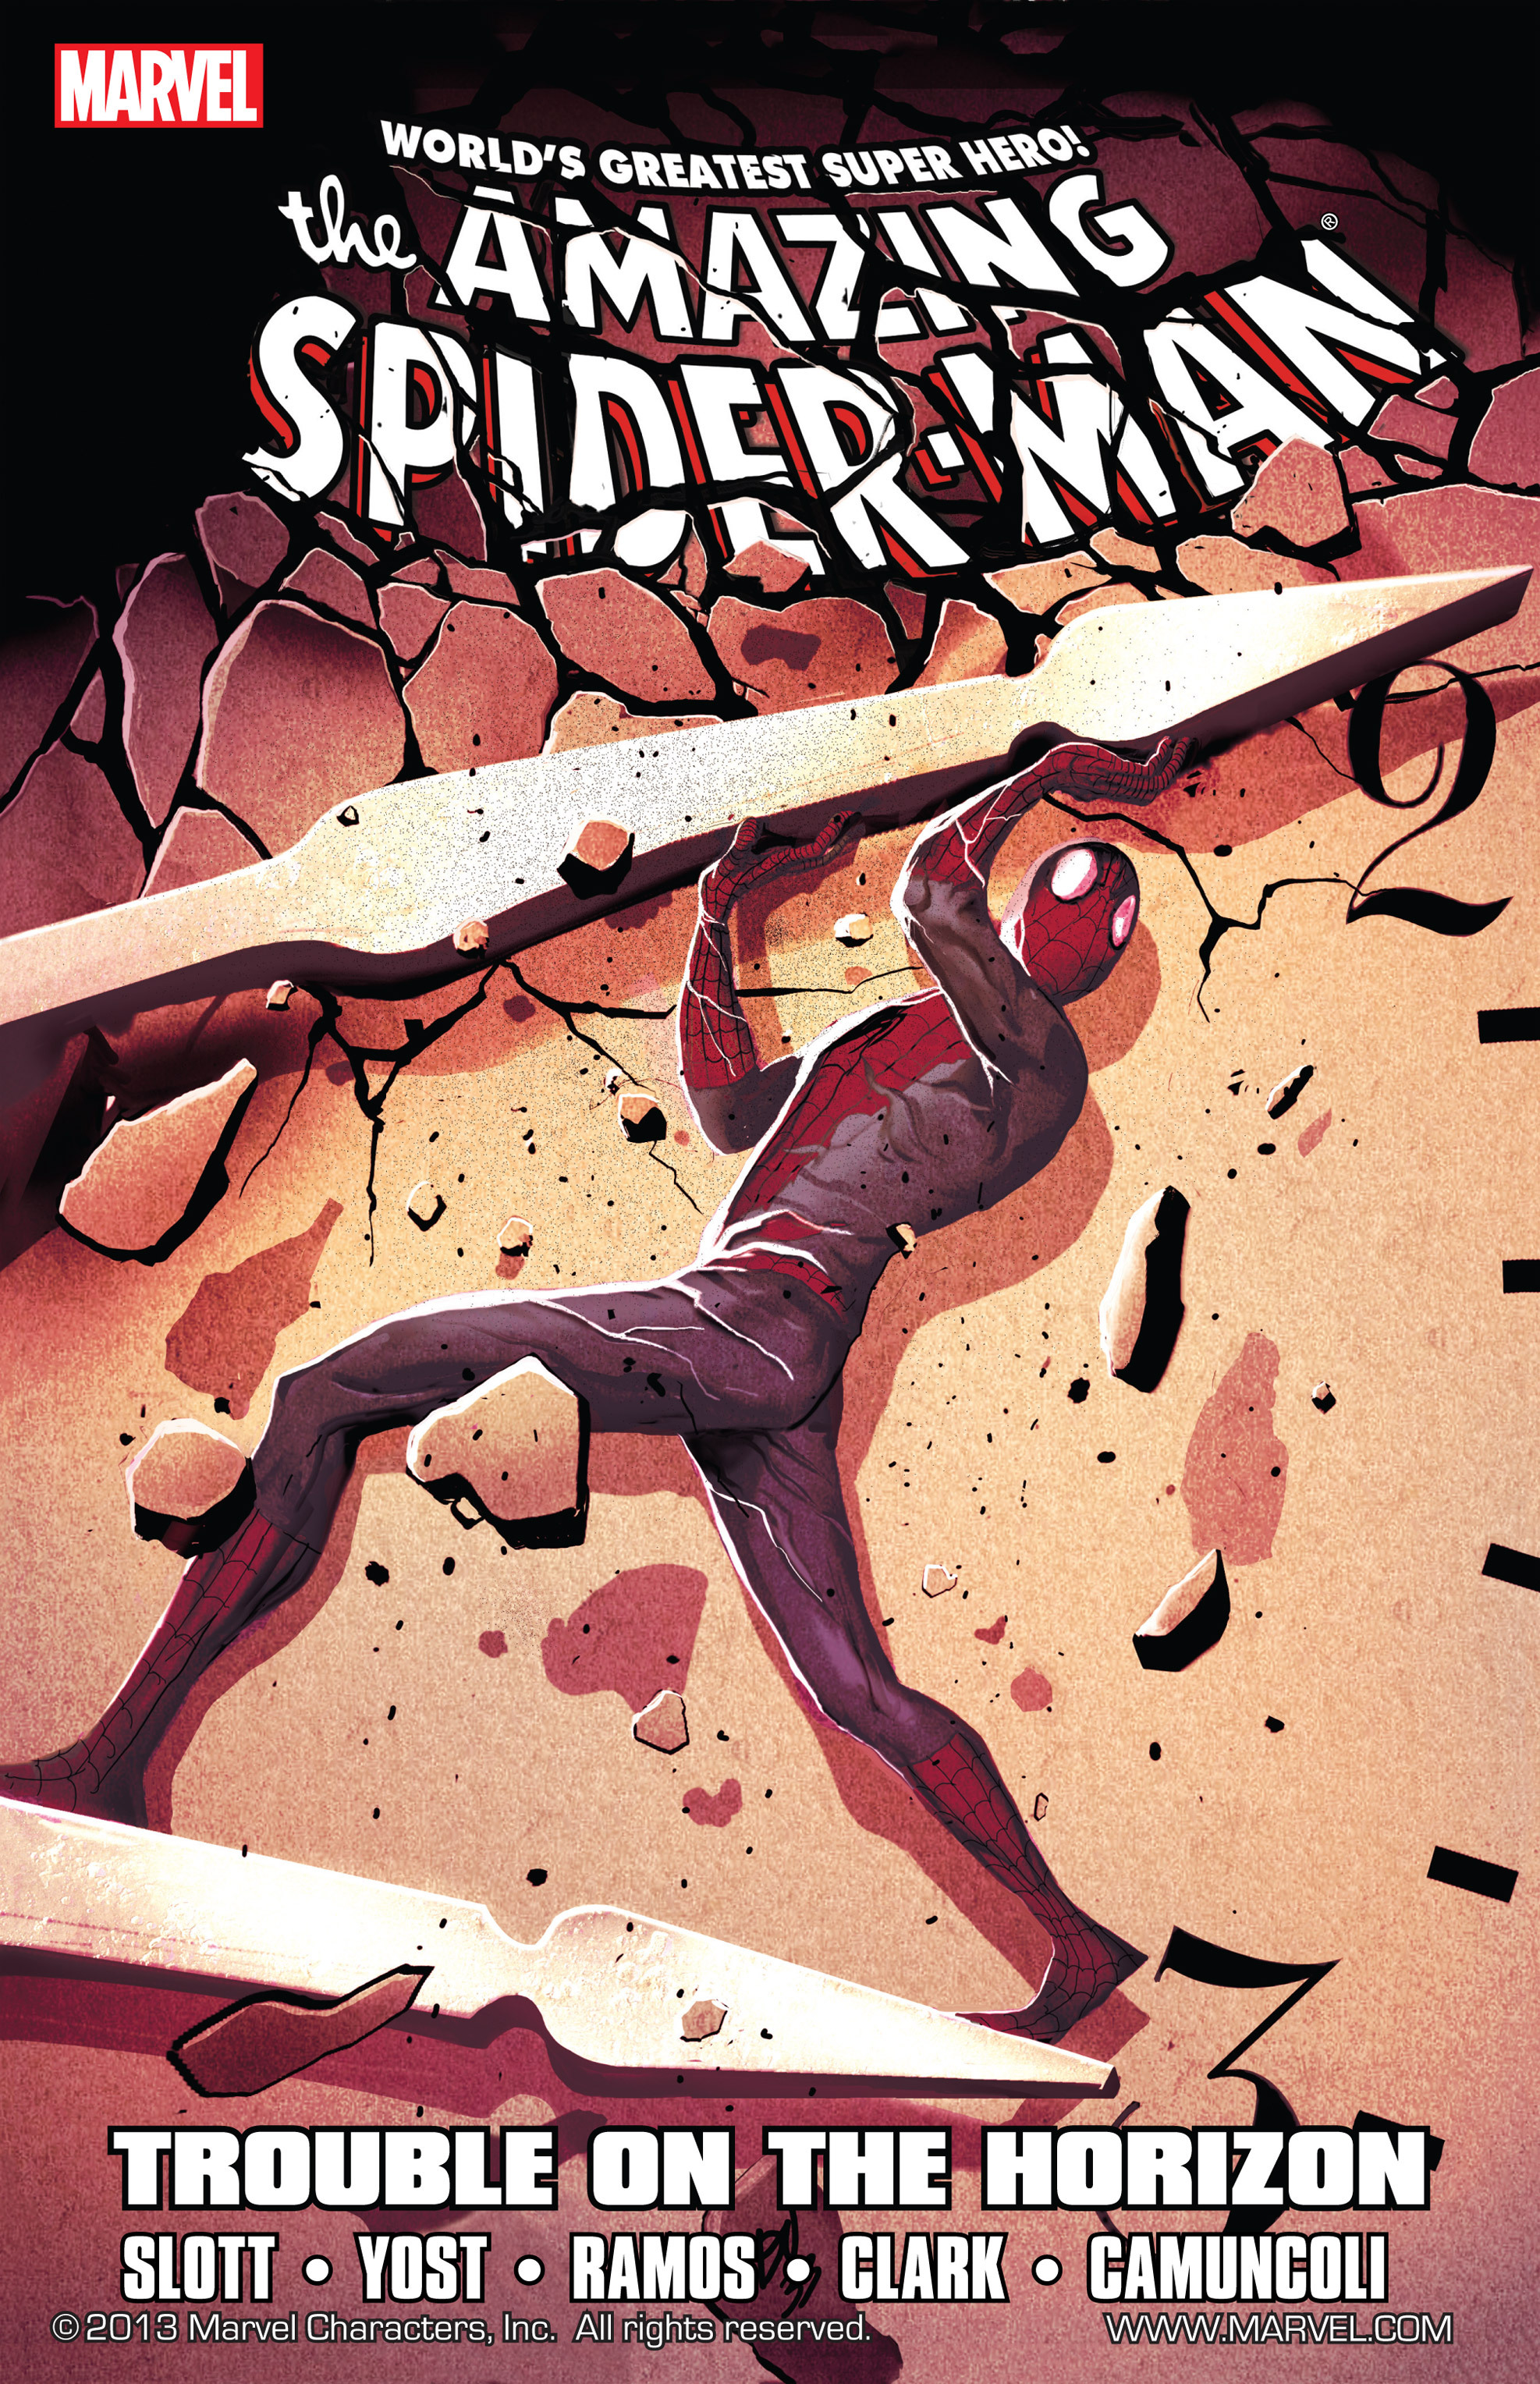 Spider-Man - Trouble On The Horizon #1